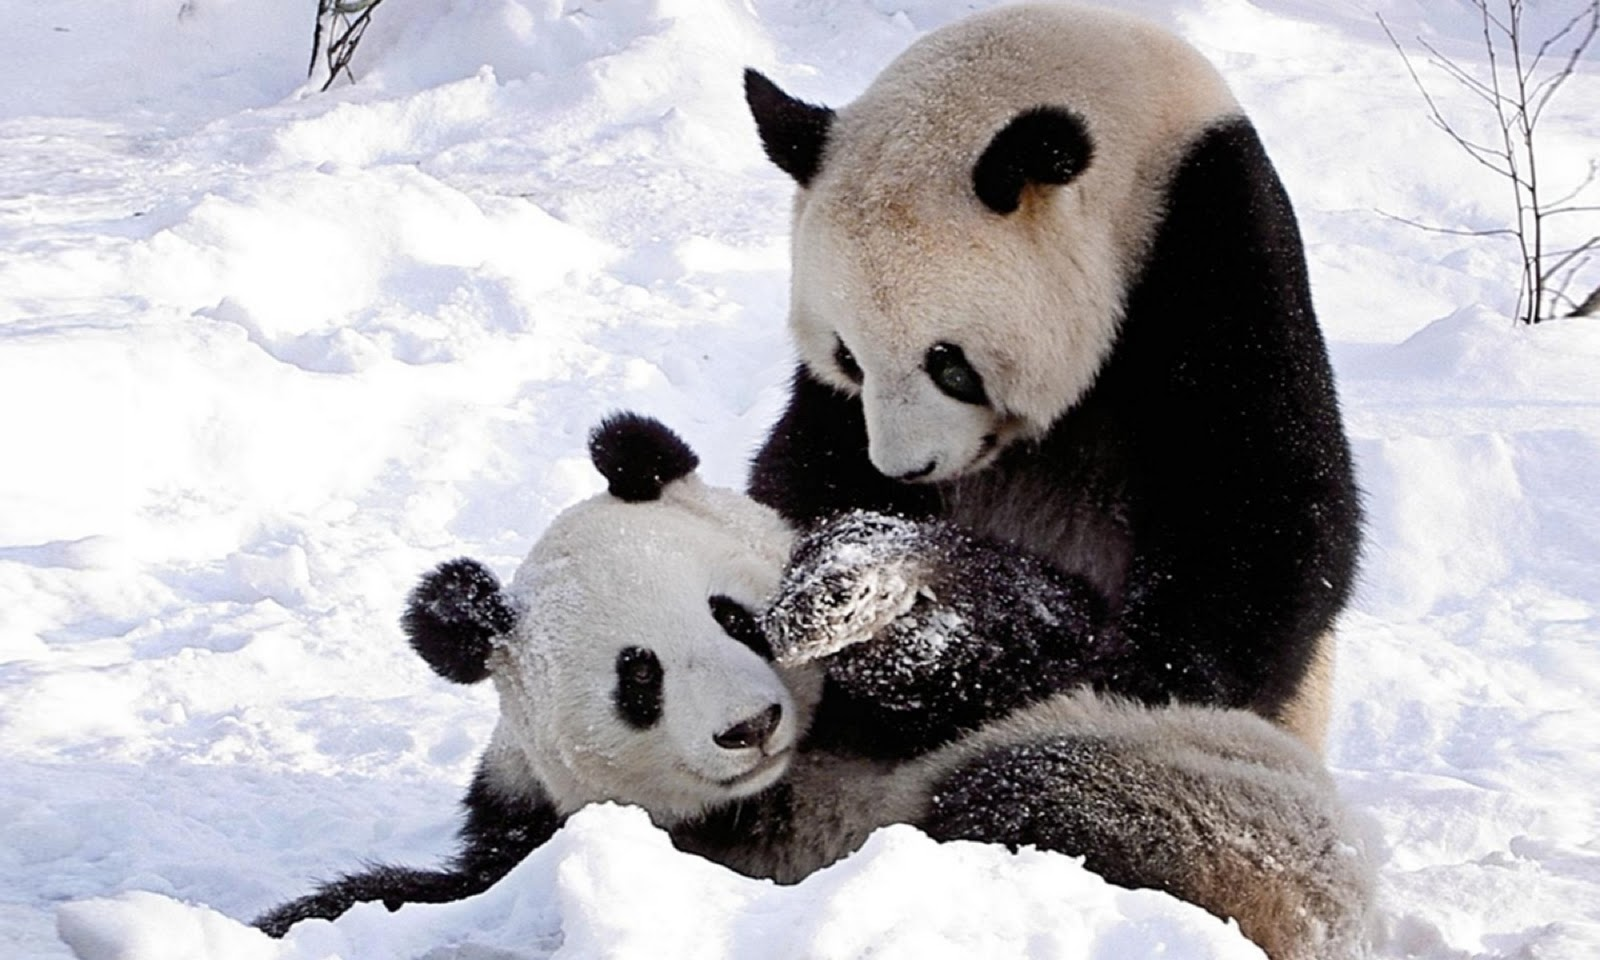 Cutepandabearwallpaper 1600x960